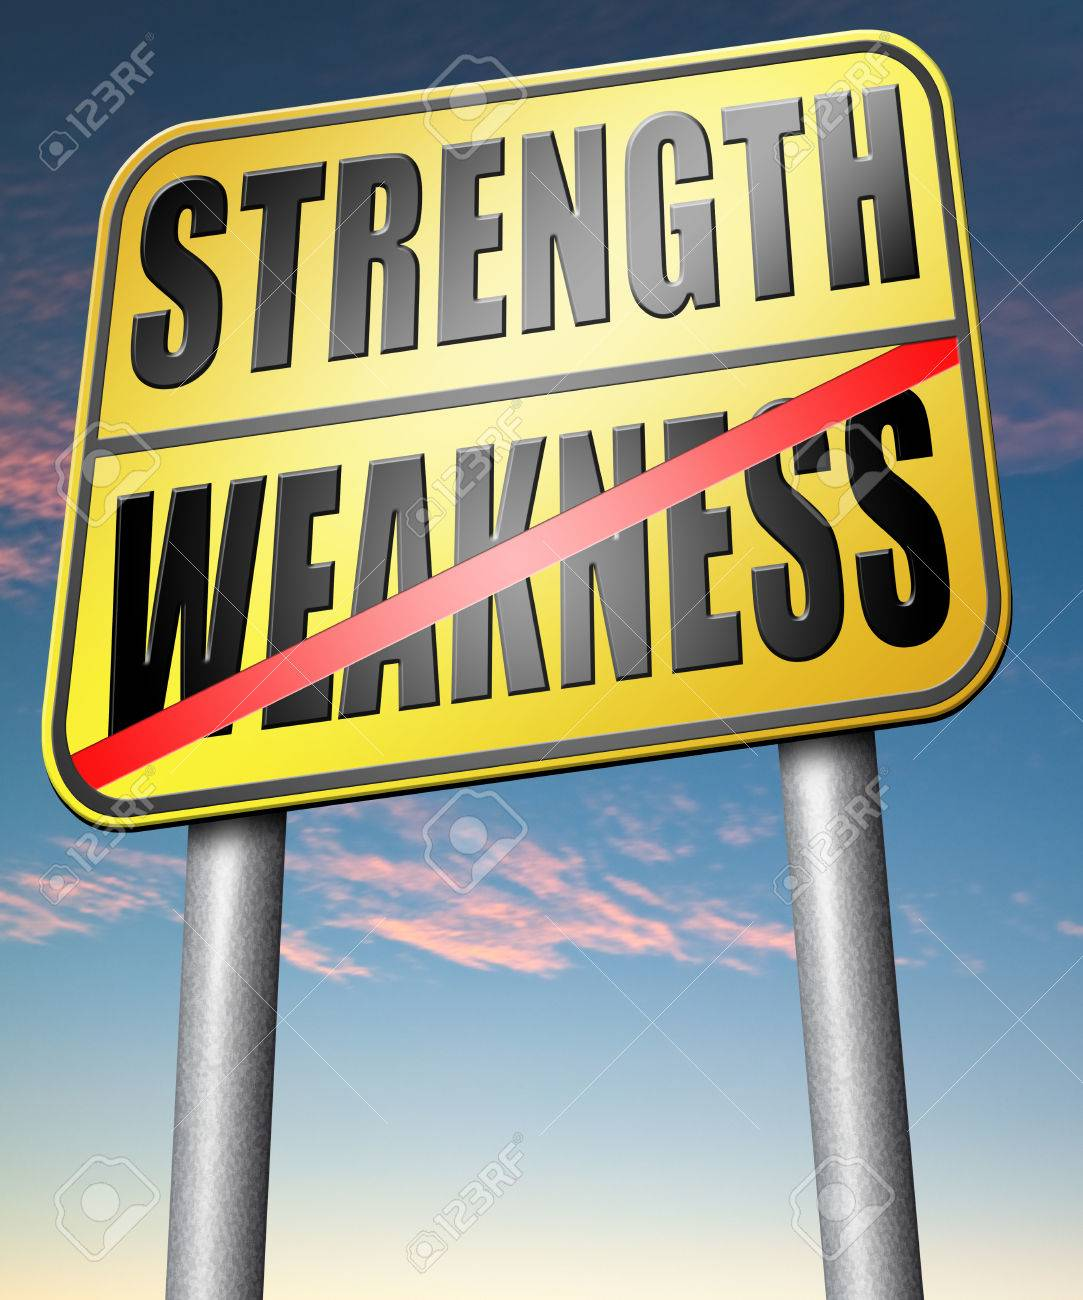 strength versus weakness strong or weak overcome problems by stock photo strength versus weakness strong or weak overcome problems by being strong and not weak accept the challenge to success